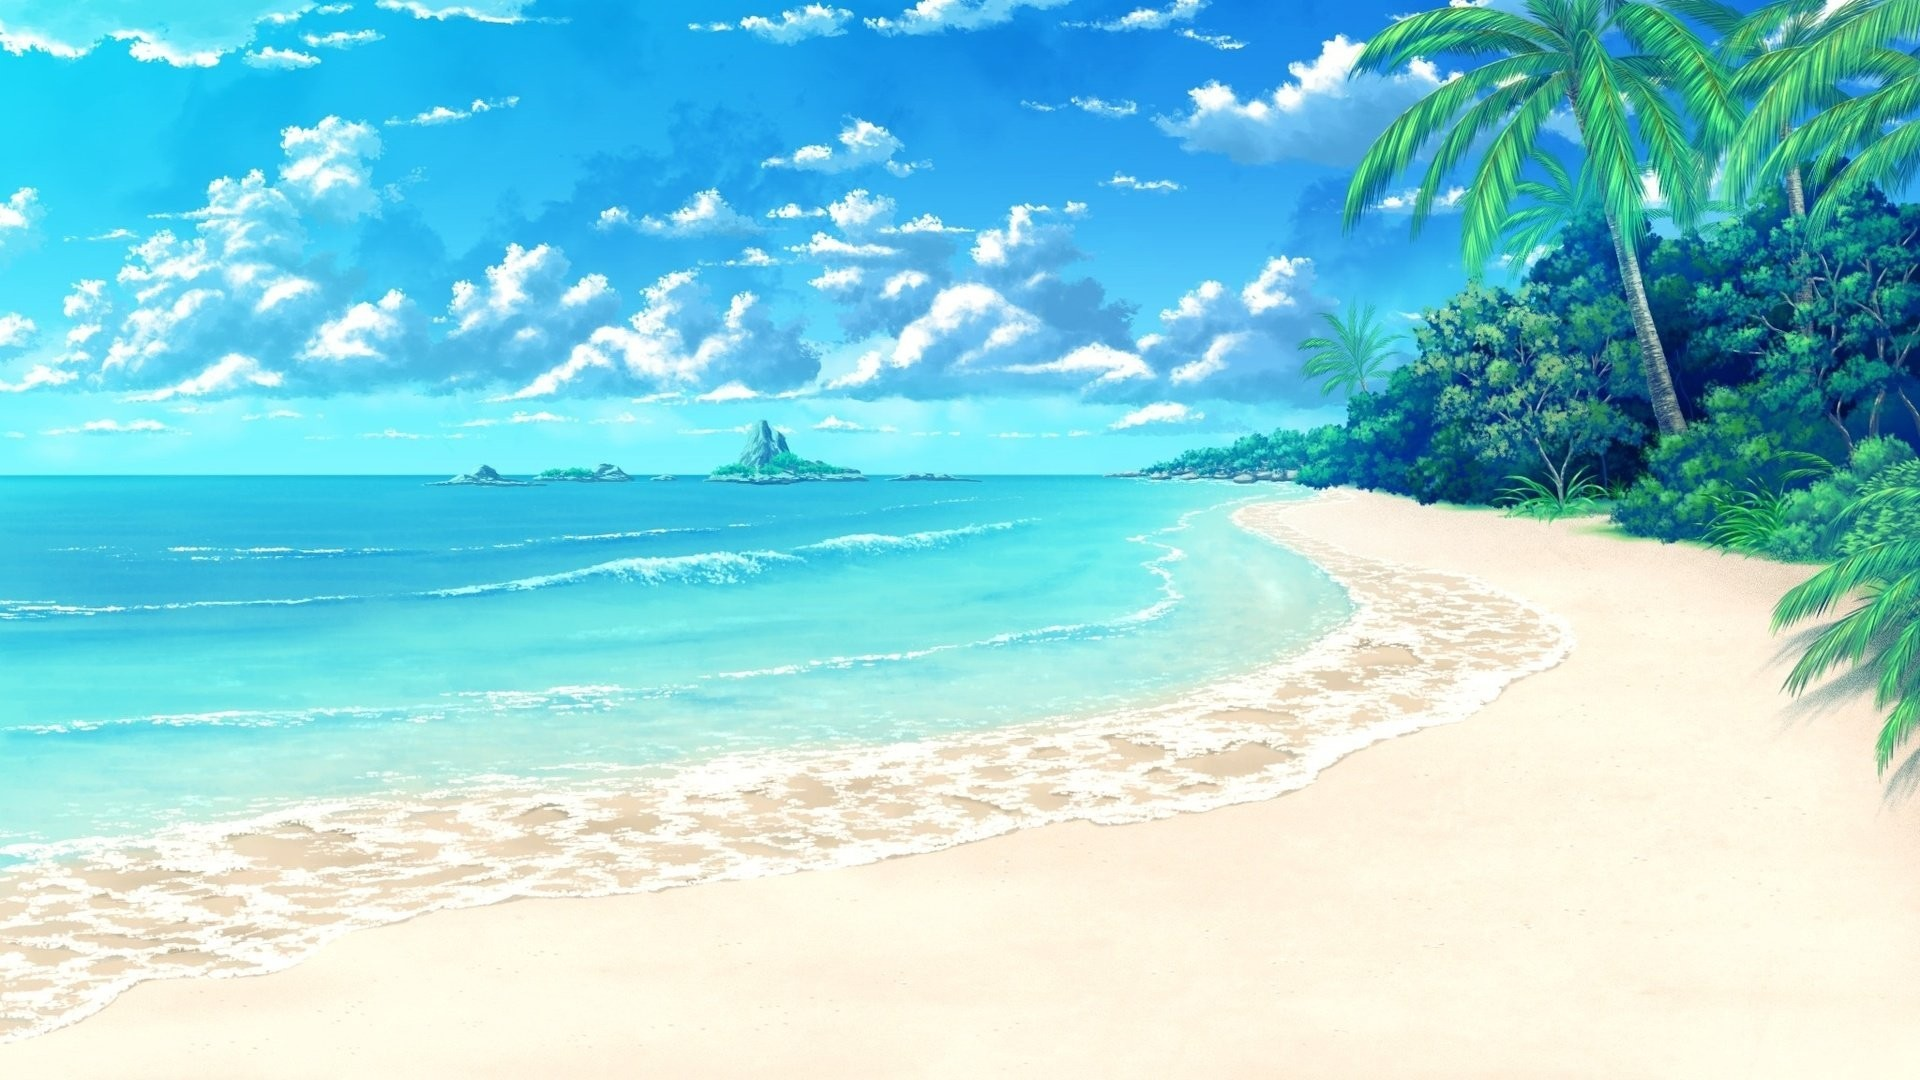 3d Beach Wallpaper 52 Images 2000x1333 Blue Hd Wall Decal